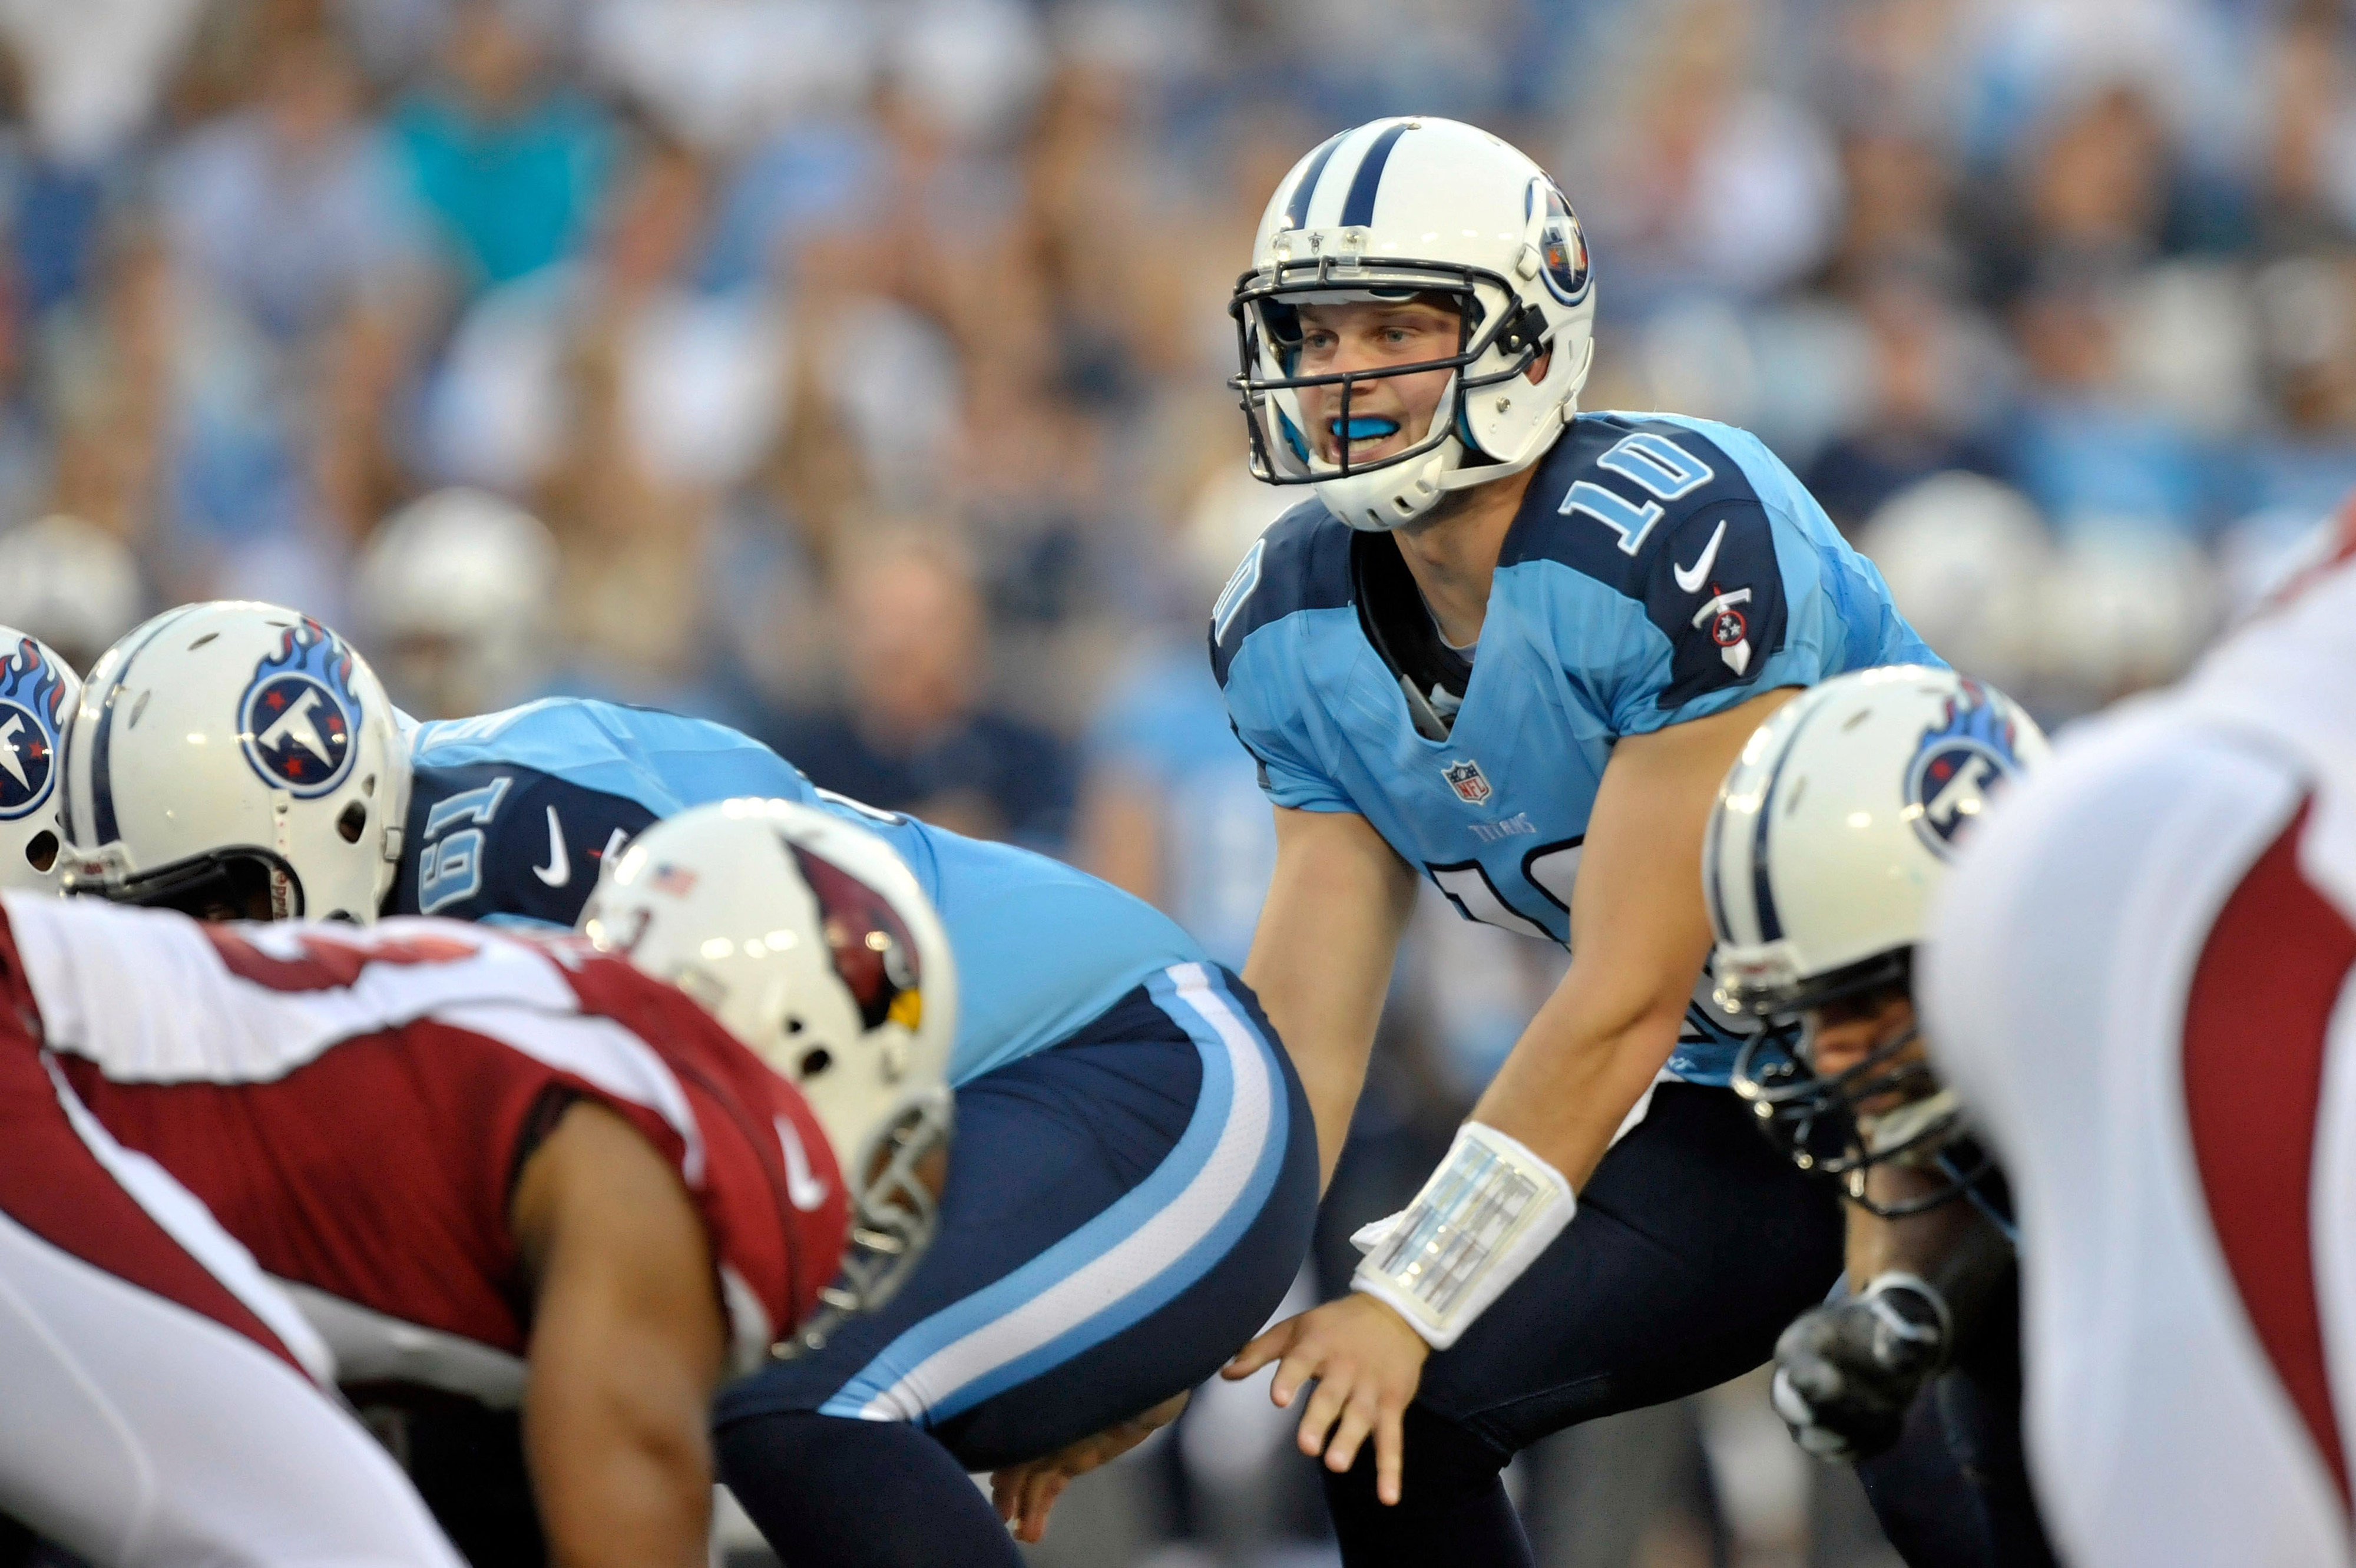 Aug 23, 2012; Nashville, TN, USA; Tennessee Titans quarterback Jake Locker (10) takes the snap against the Arizona Cardinals during the first half at LP Field. Mandatory Credit: Jim Brown-US PRESSWIRE